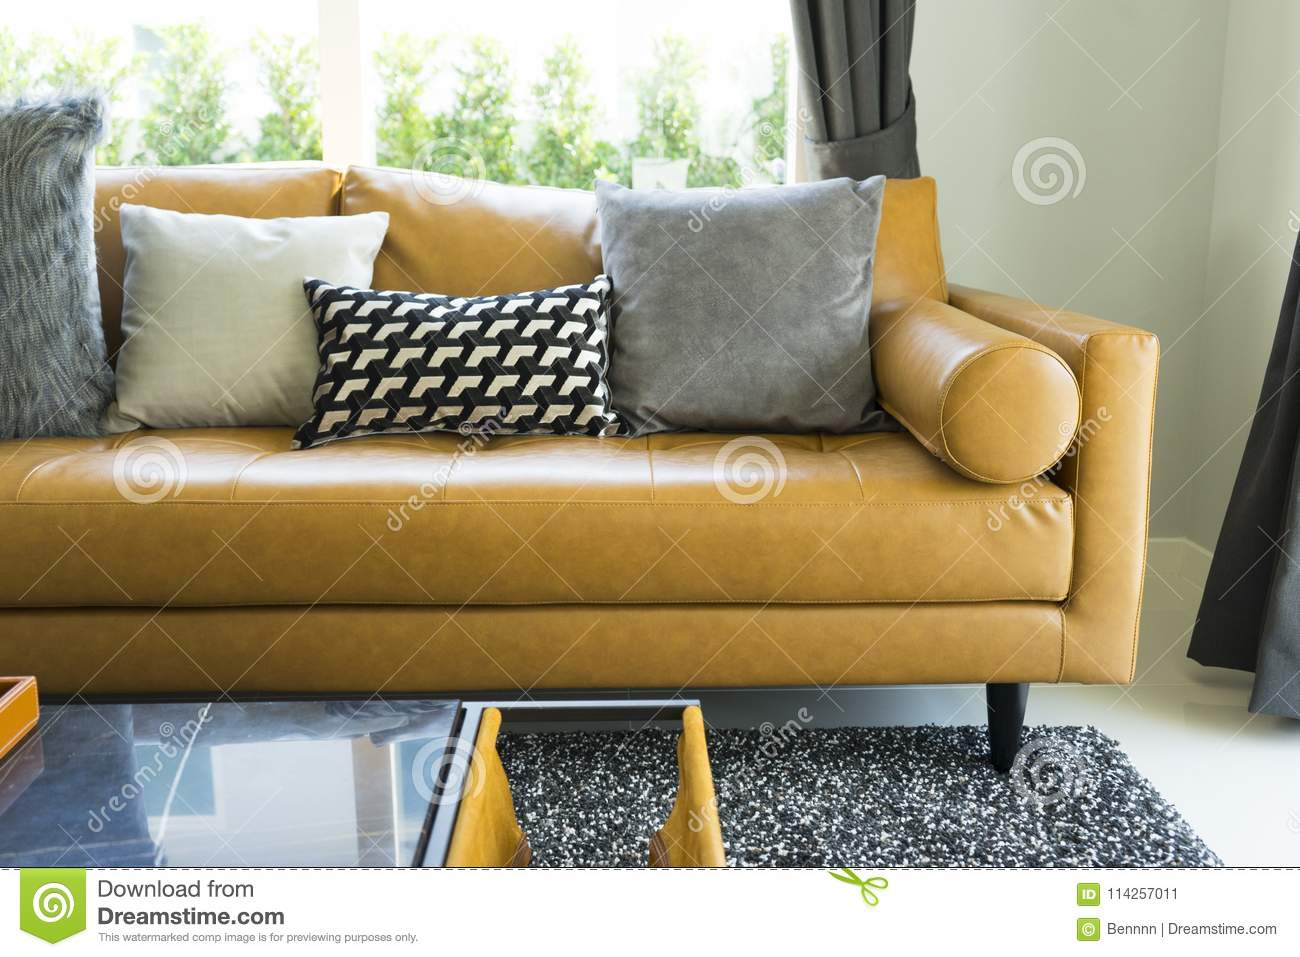 Picture of: Decorative Pillow On Leather Sofa In Living Room Stock Image Image Of Comfortable Elegance 114257011